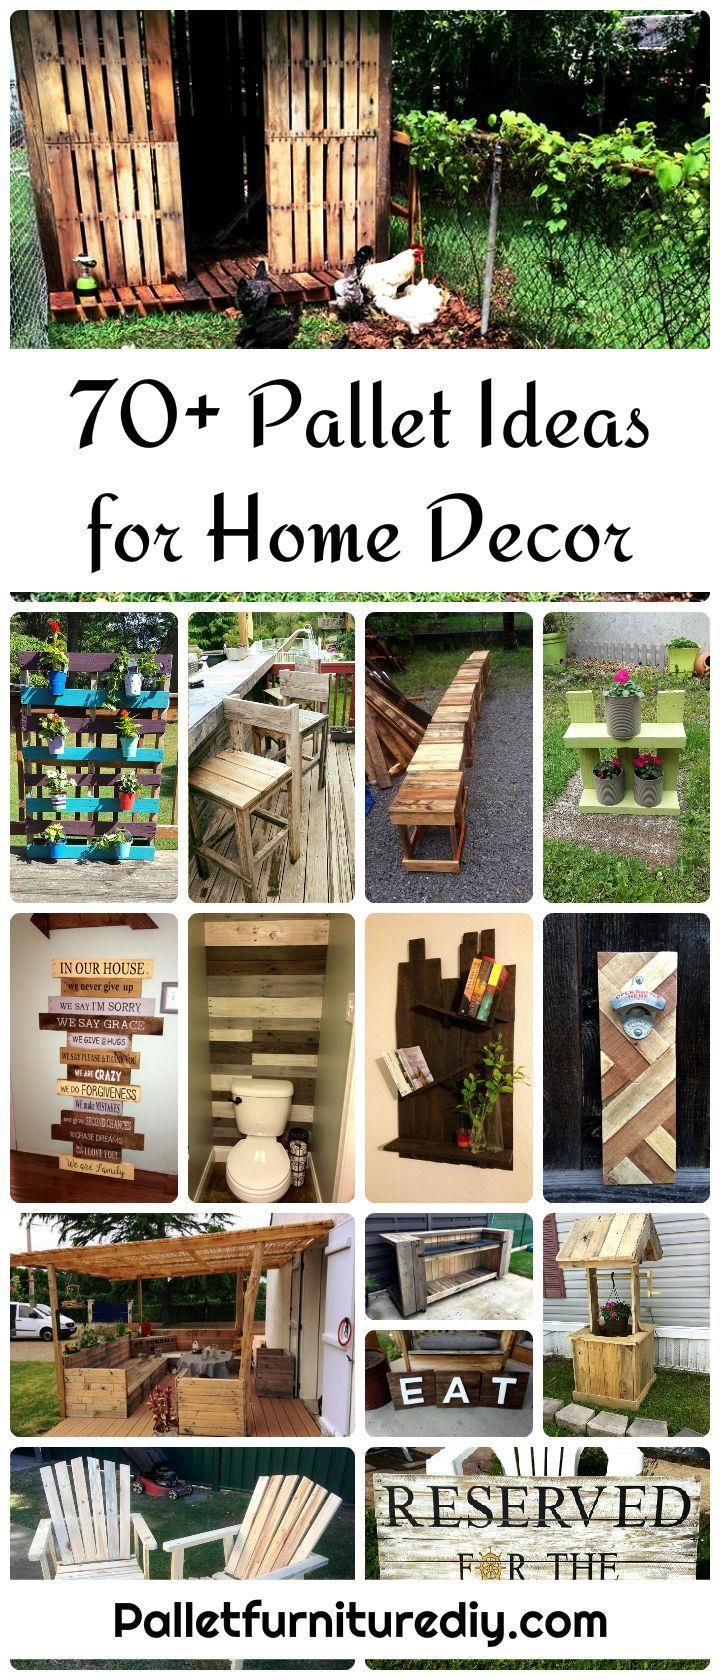 Here with this round up of DIY pallet ideas for home decor you would  astonishingly know the broad spectrum of the pallet achievements made by  genius